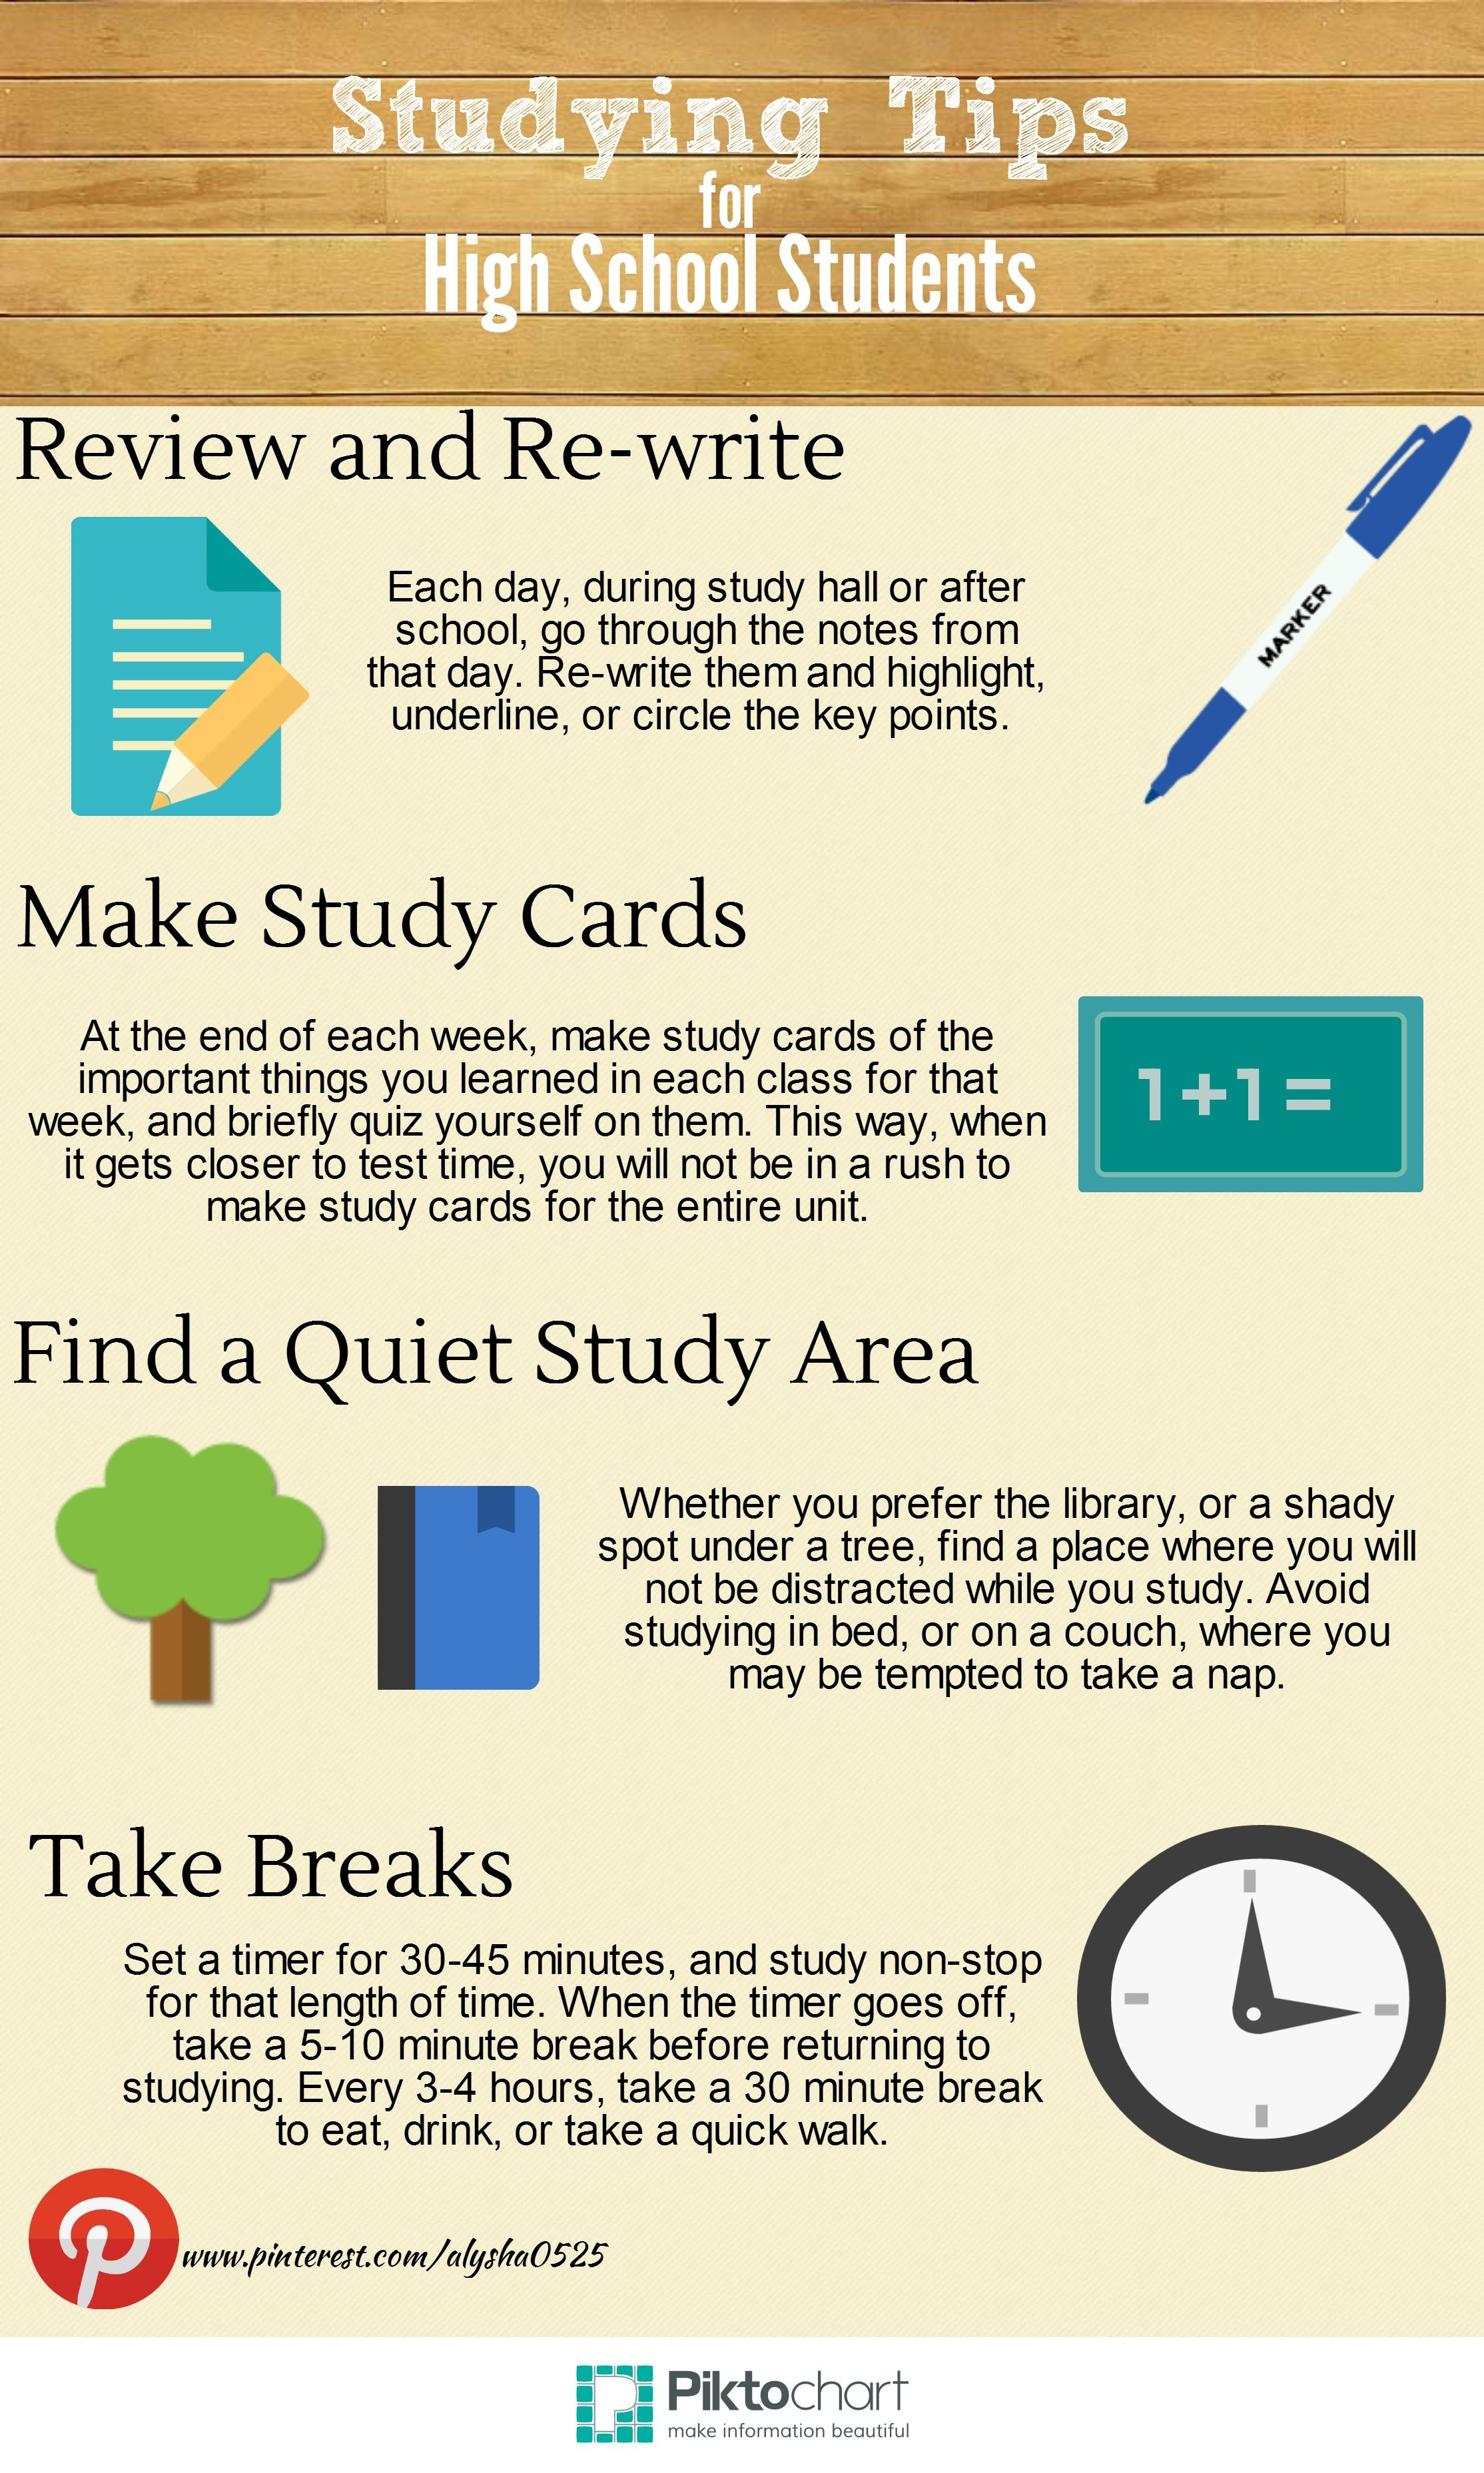 Study Tips For High School Students By Me  Student  Pinterest  Study Tips For High School Students By Me